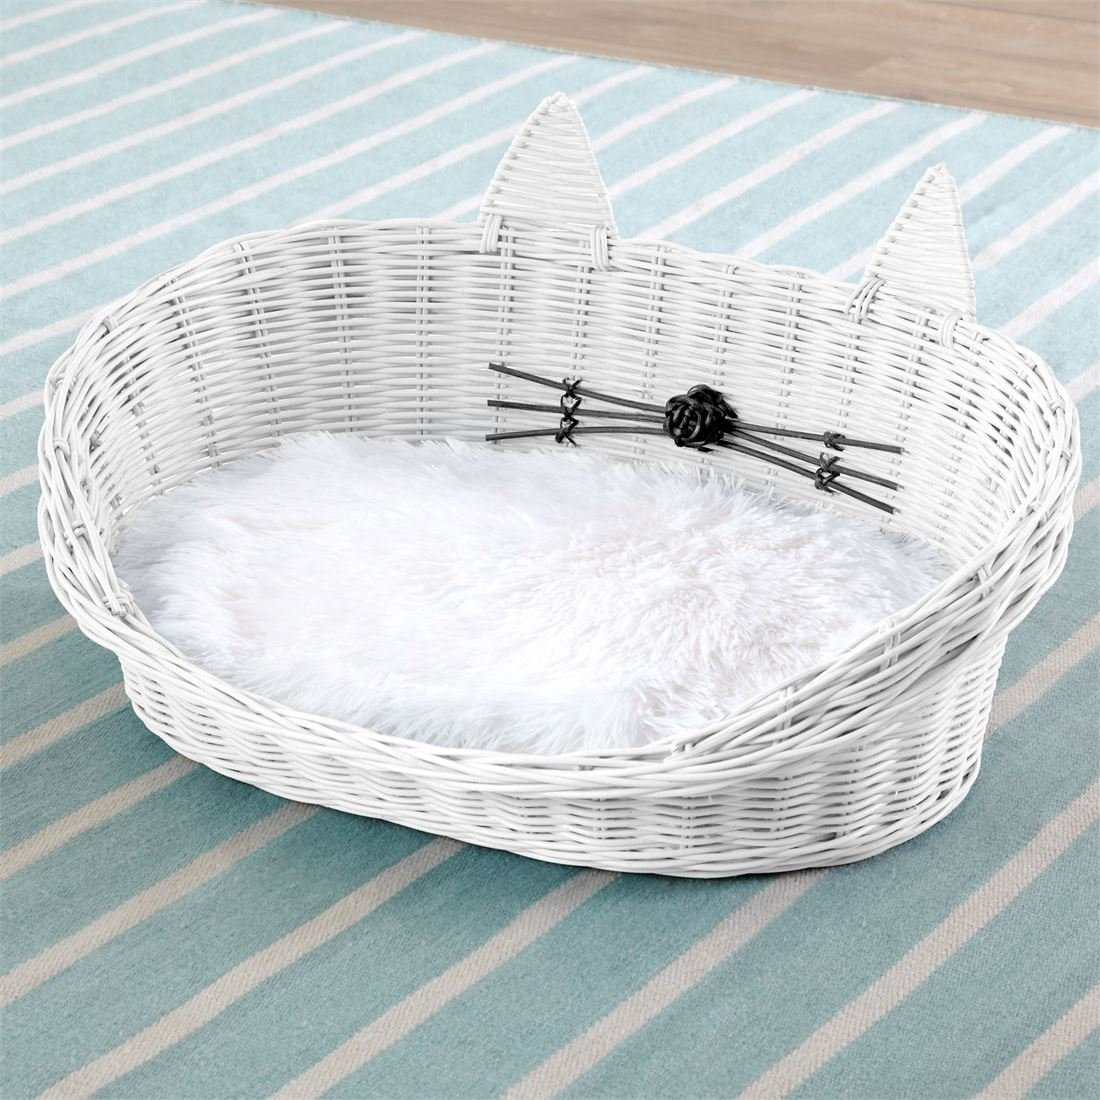 BrylaneHome Cat Ear Rattan Pet Bed (White,0)